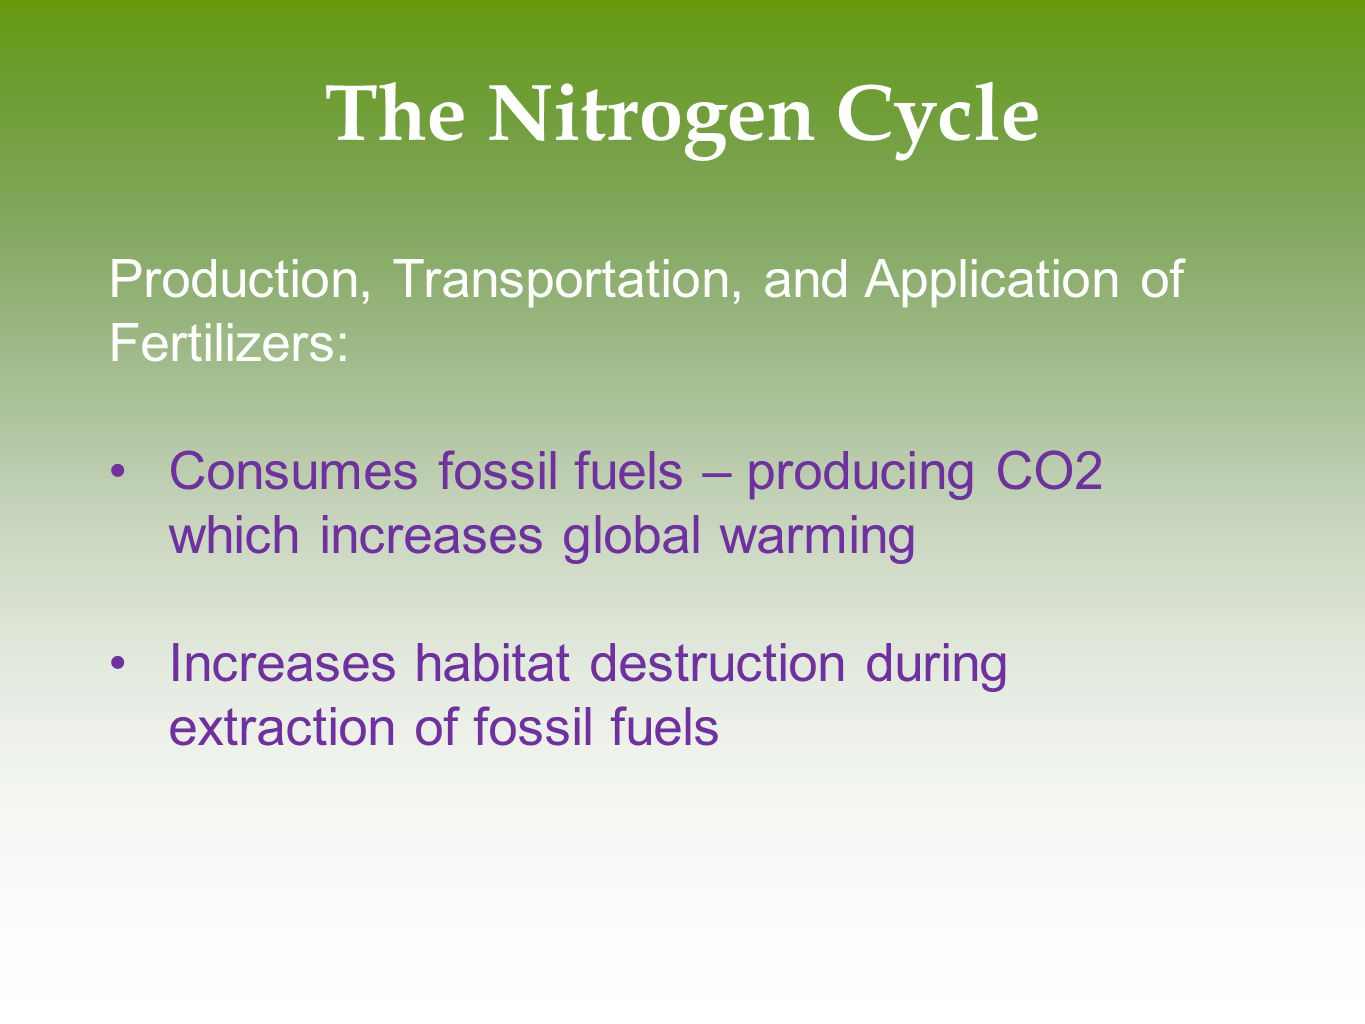 The Nitrogen Cycle Production, Transportation, and Application of Fertilizers: Consumes fossil fuels – producing CO2 which increases global warming.